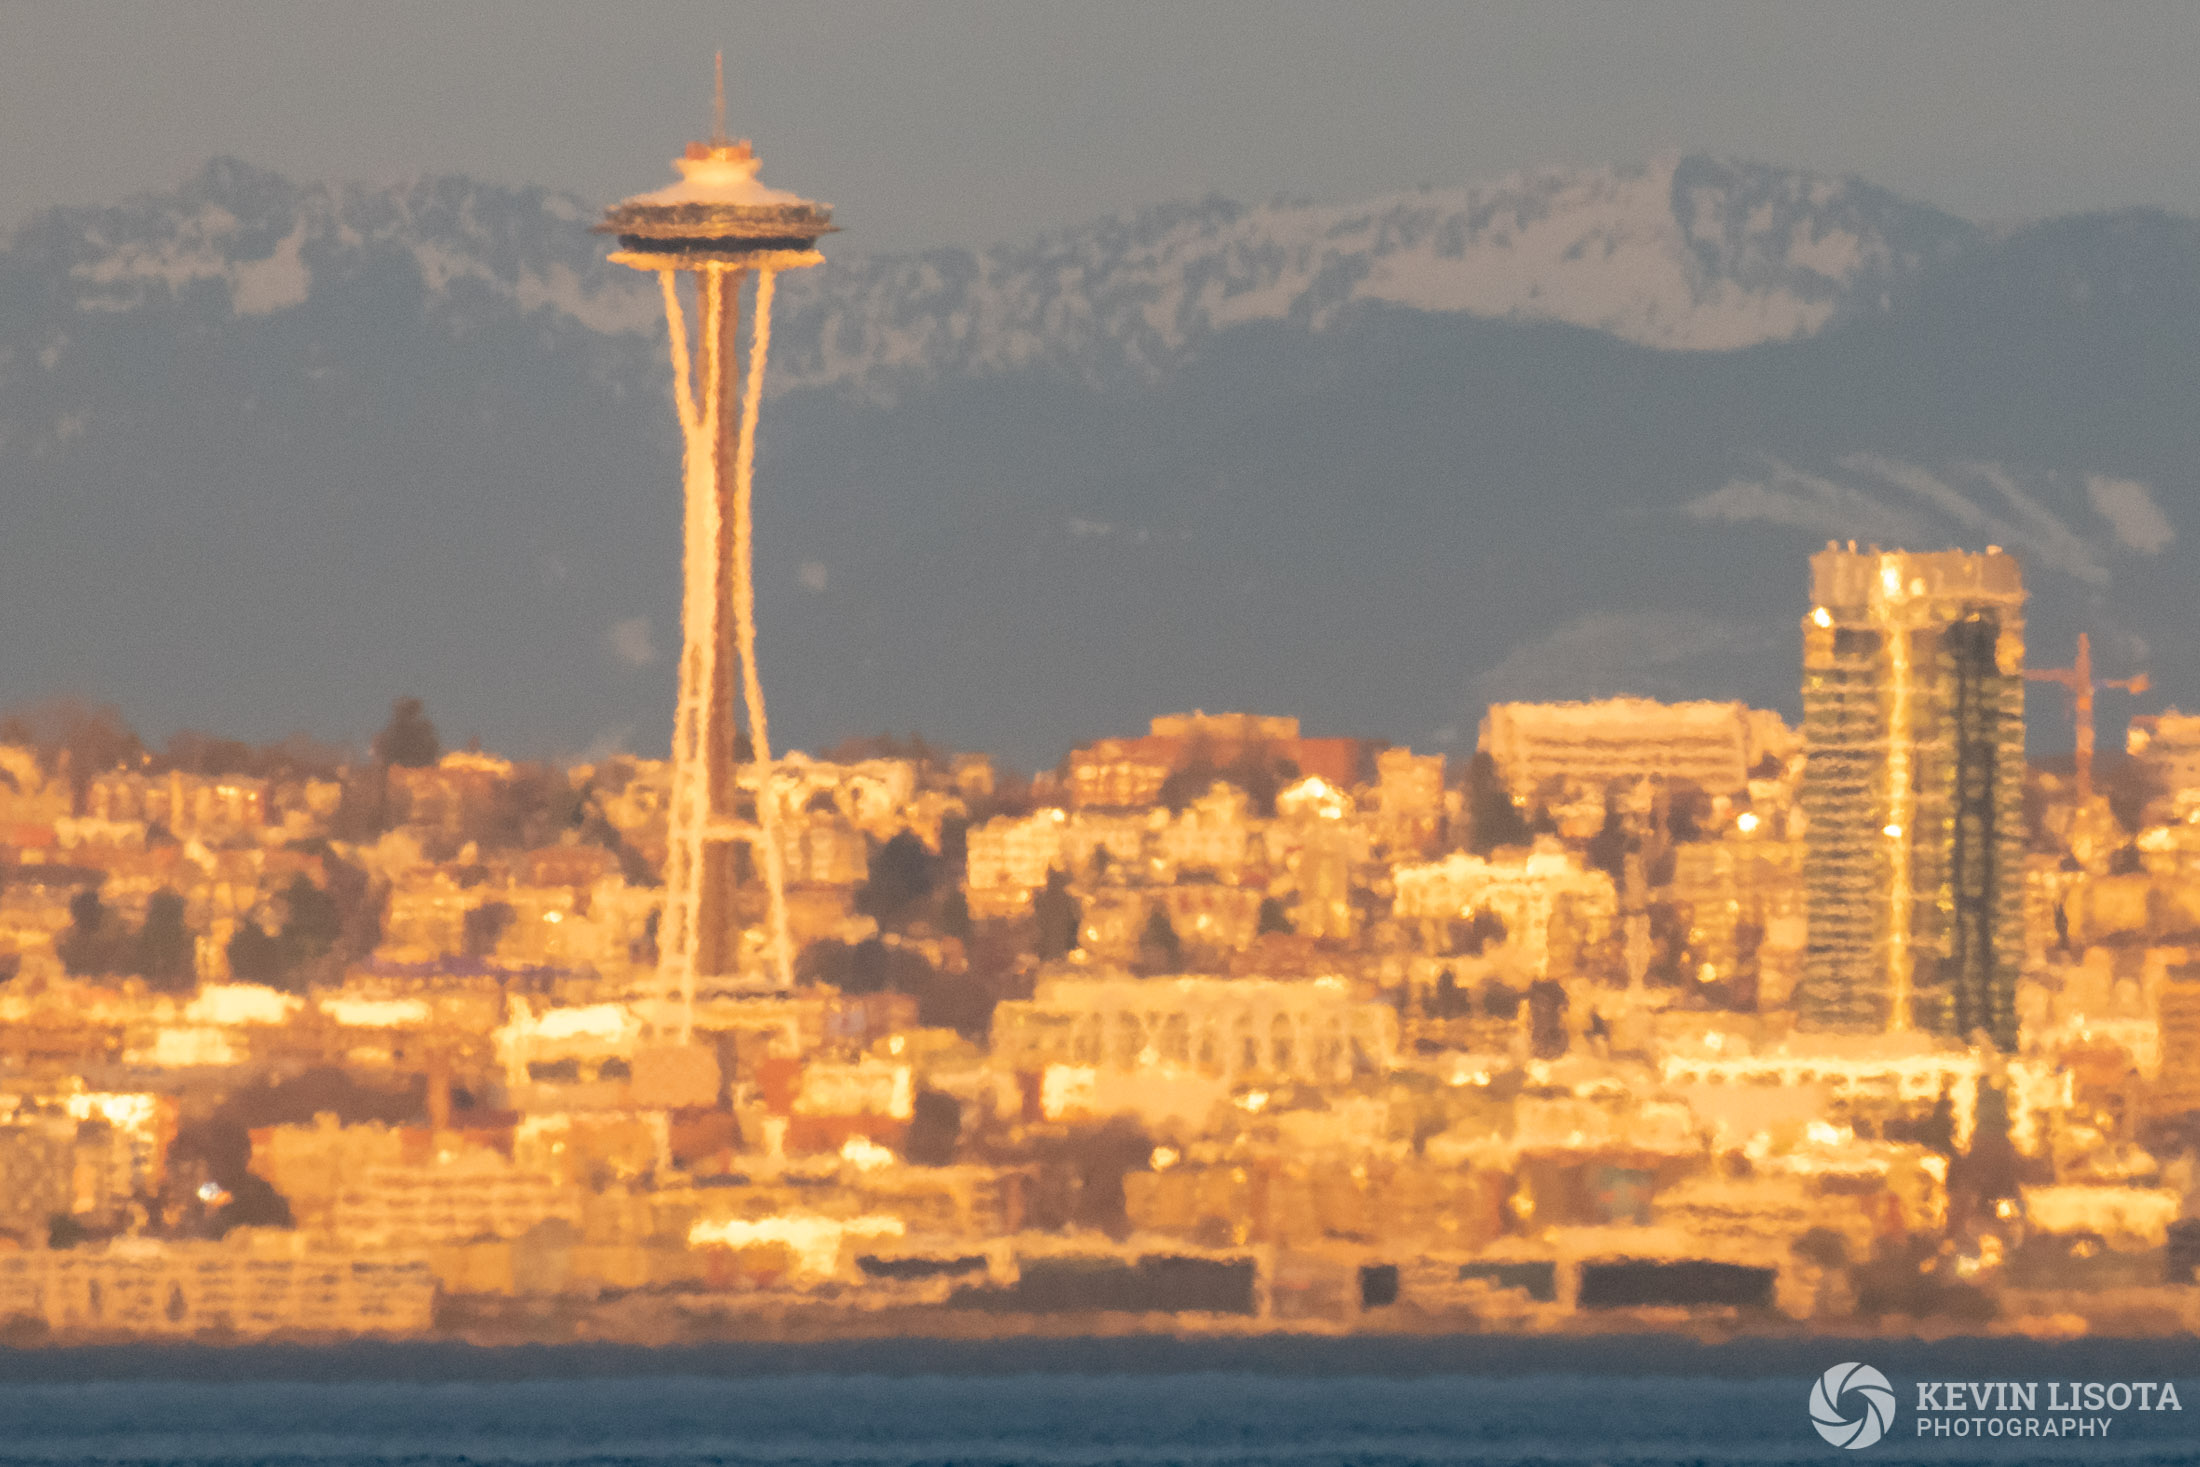 Heat distortion of Seattle Skyline taken from 7 miles away over Puget Sound.